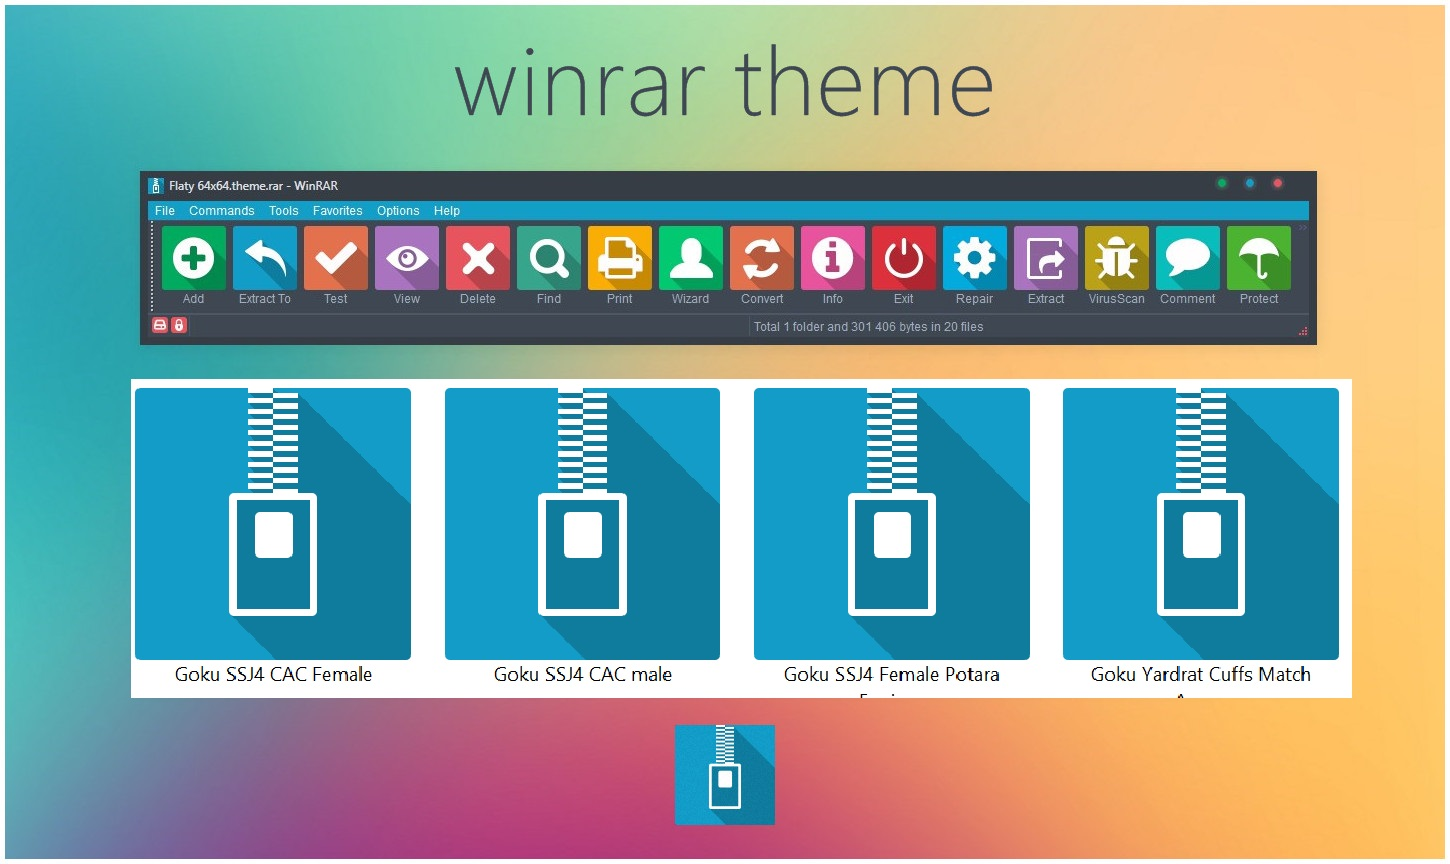 flaty_winrar_theme-preview.jpg